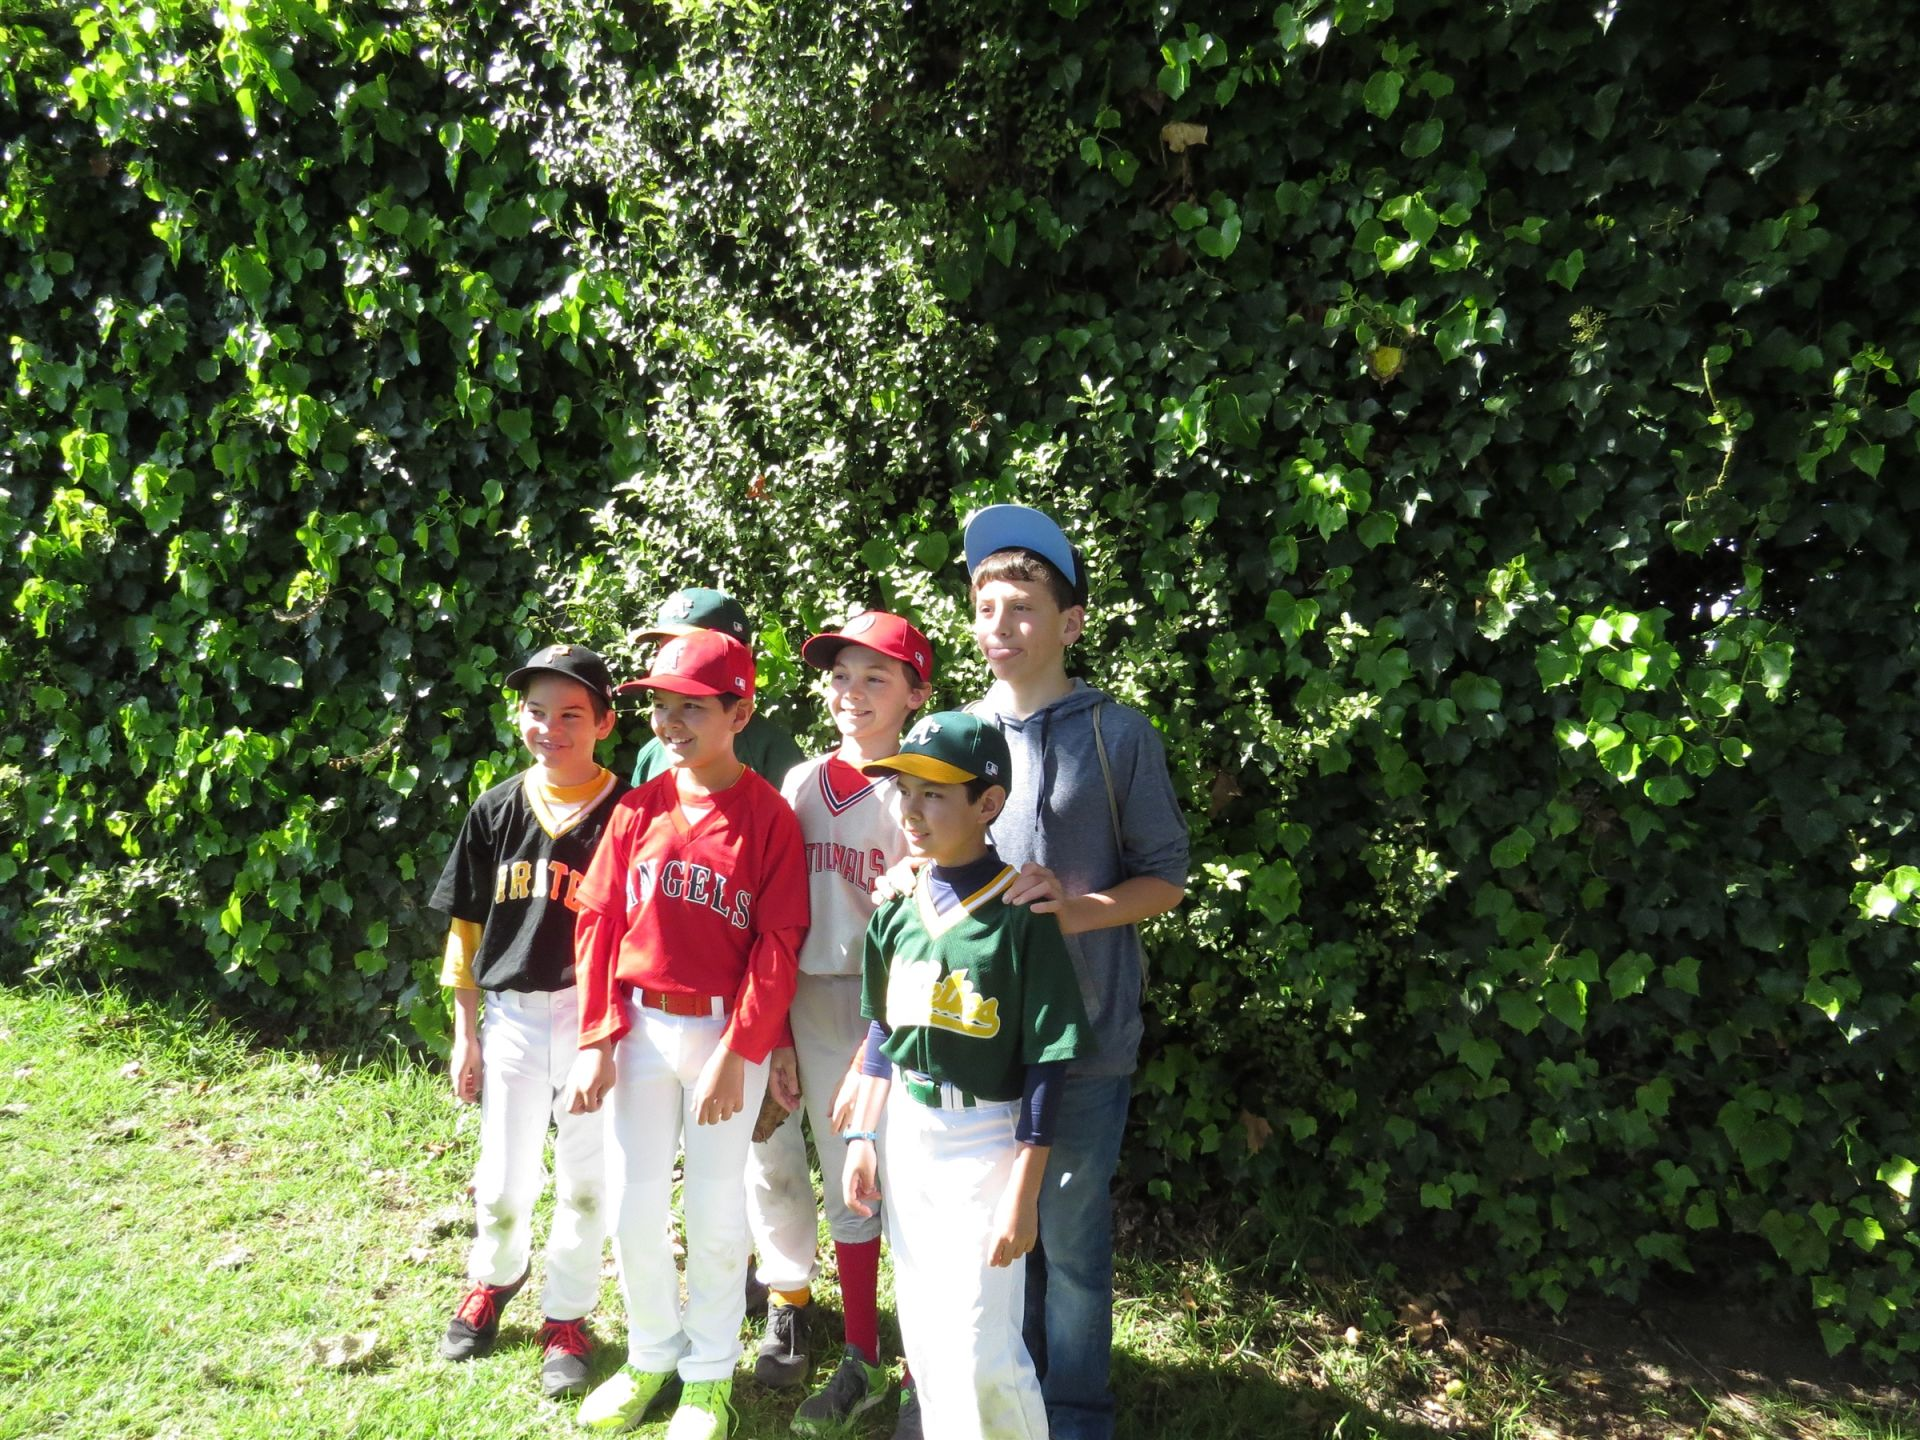 Relaxing before singing the National Anthem at SF Little League opening.